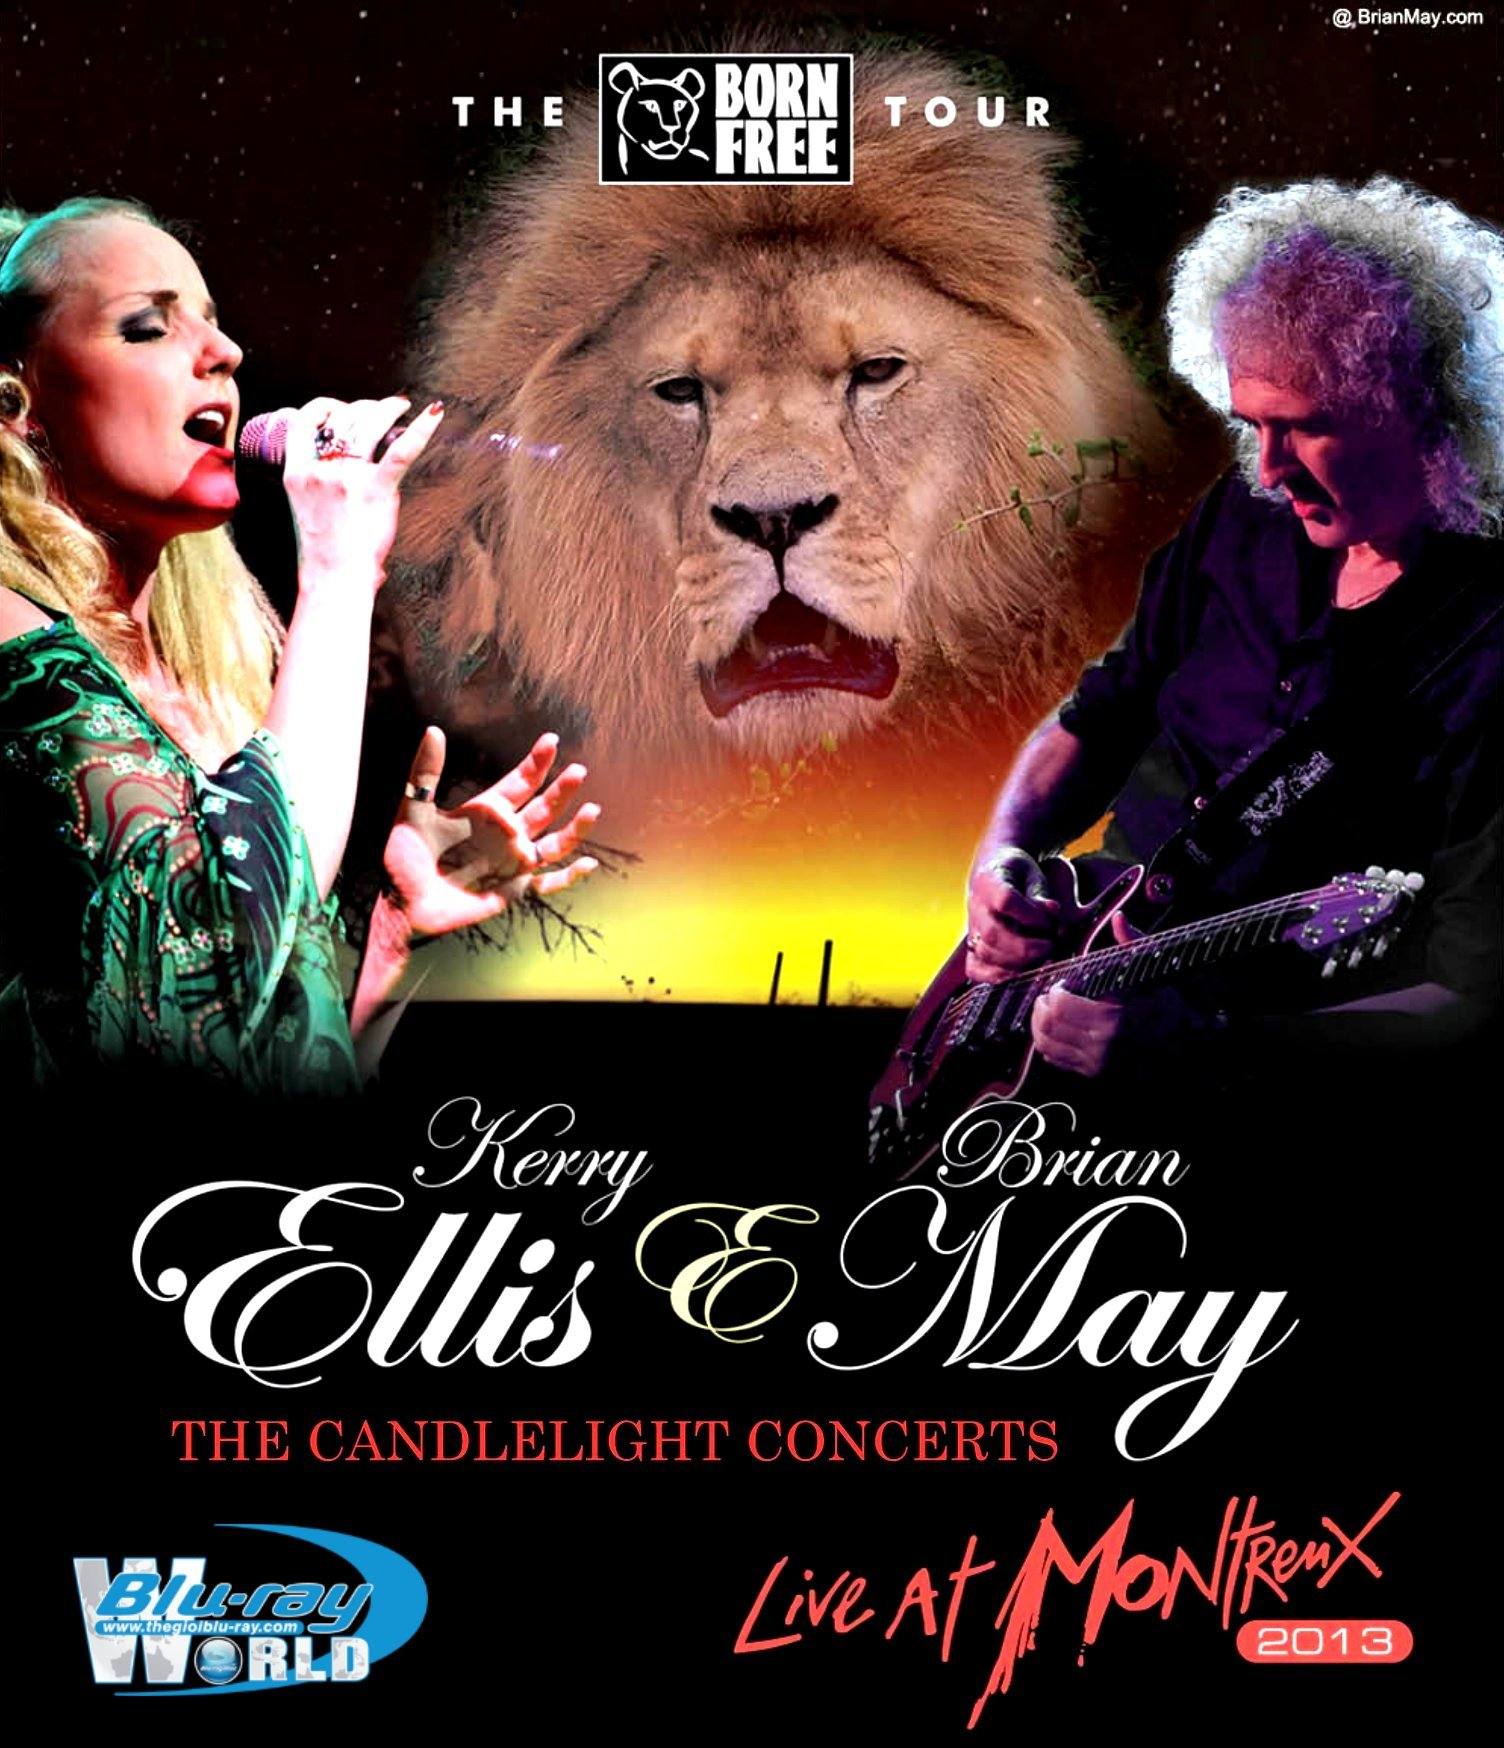 The Candlelight Concerts Live at Montreux